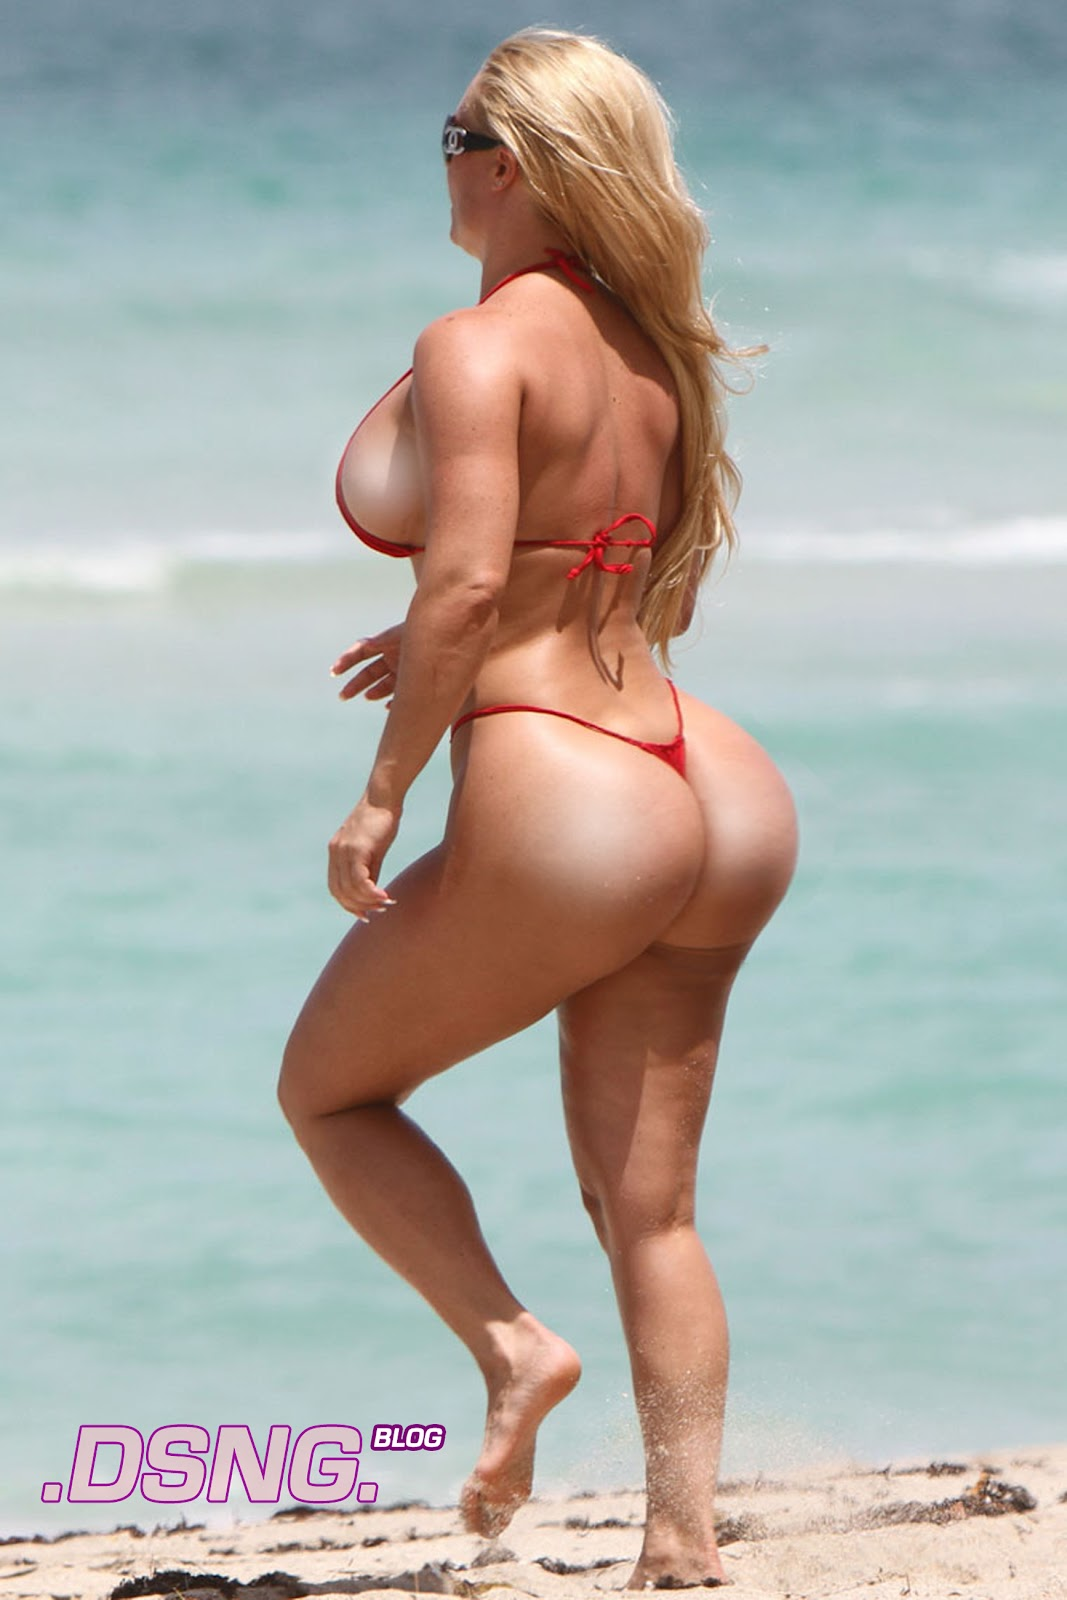 Cocos Measurements http://dsngsfm.blogspot.com/2012/04/coco-austin-classic-photo-gallery.html